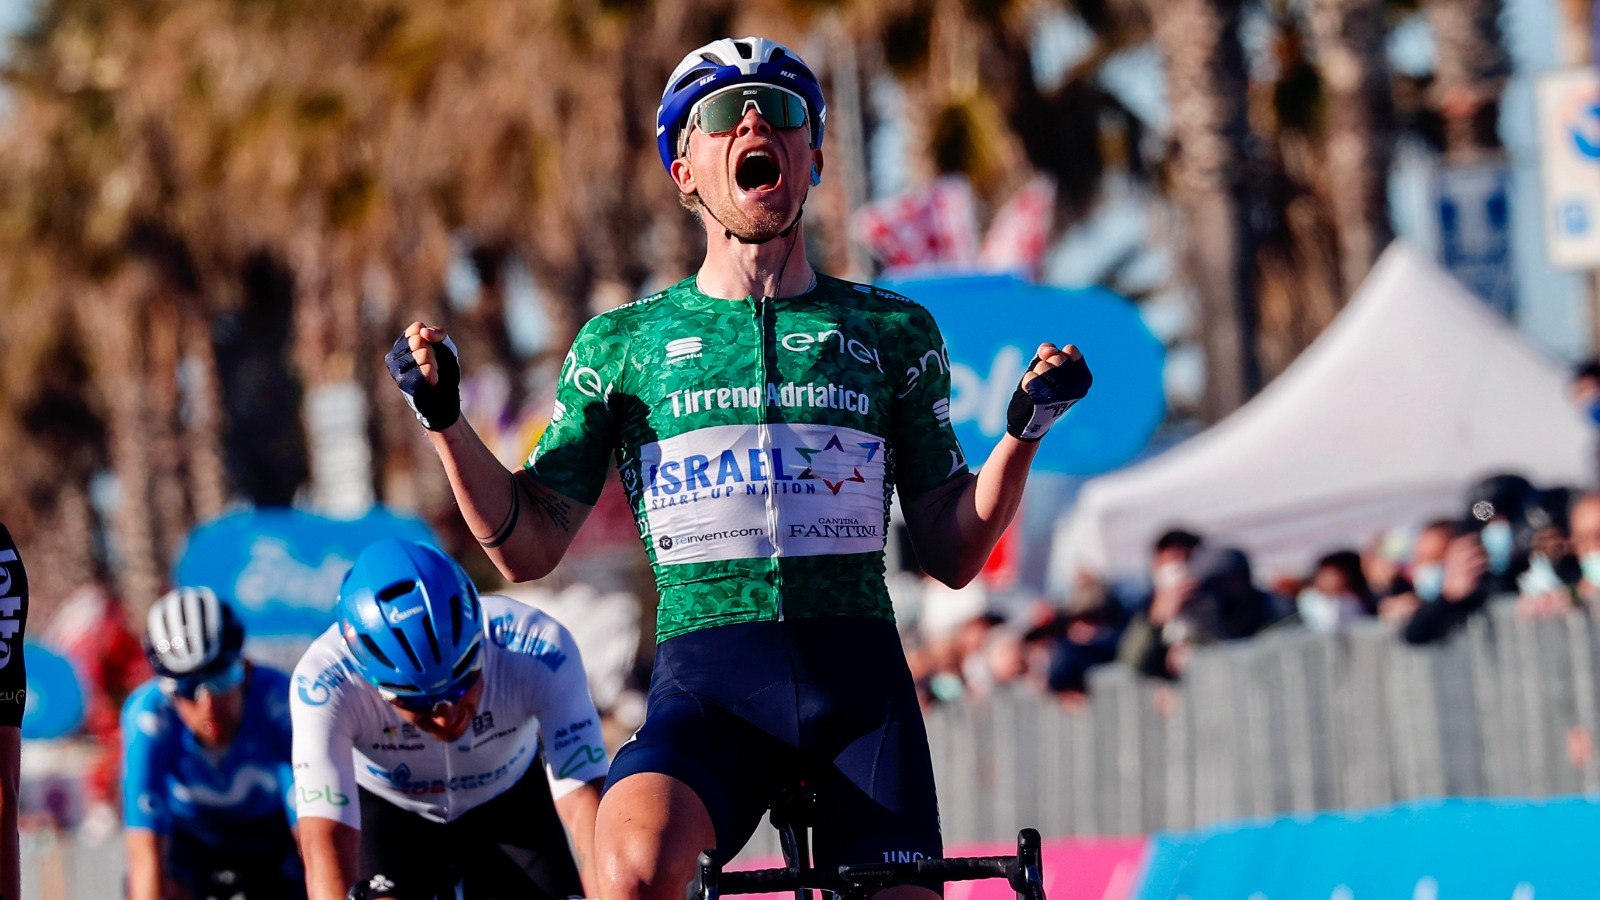 VIDEO: MAXIMUM MADS – Würtz wins stage 6 Tirreno-Adriatico 2021